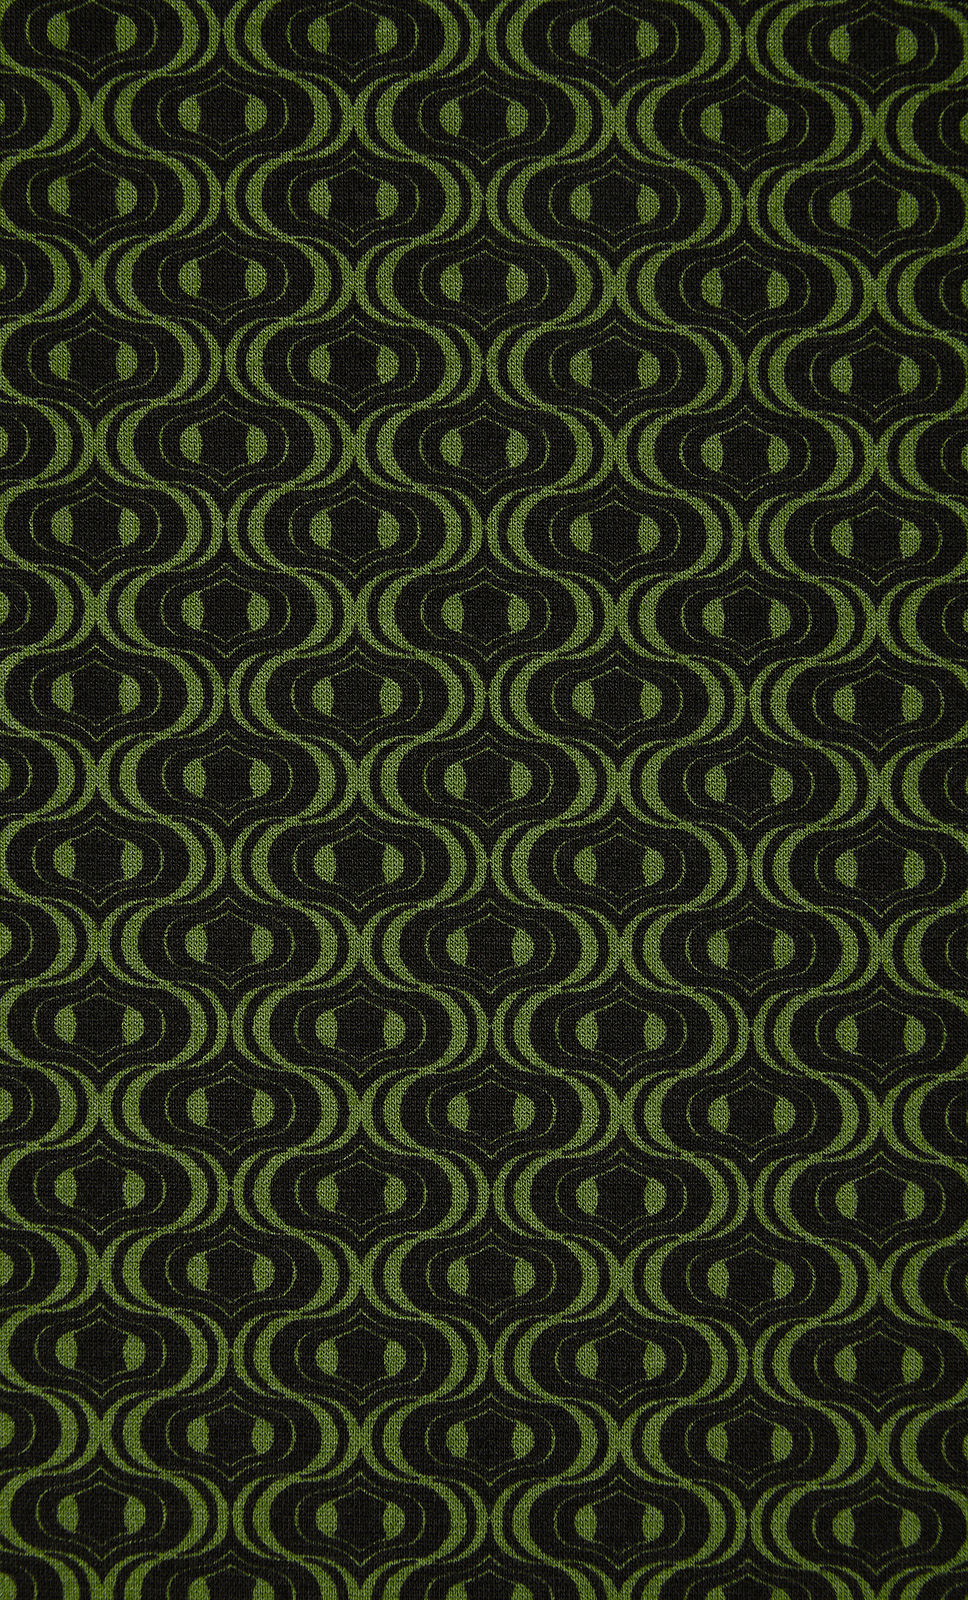 Loopy-Grass-Green